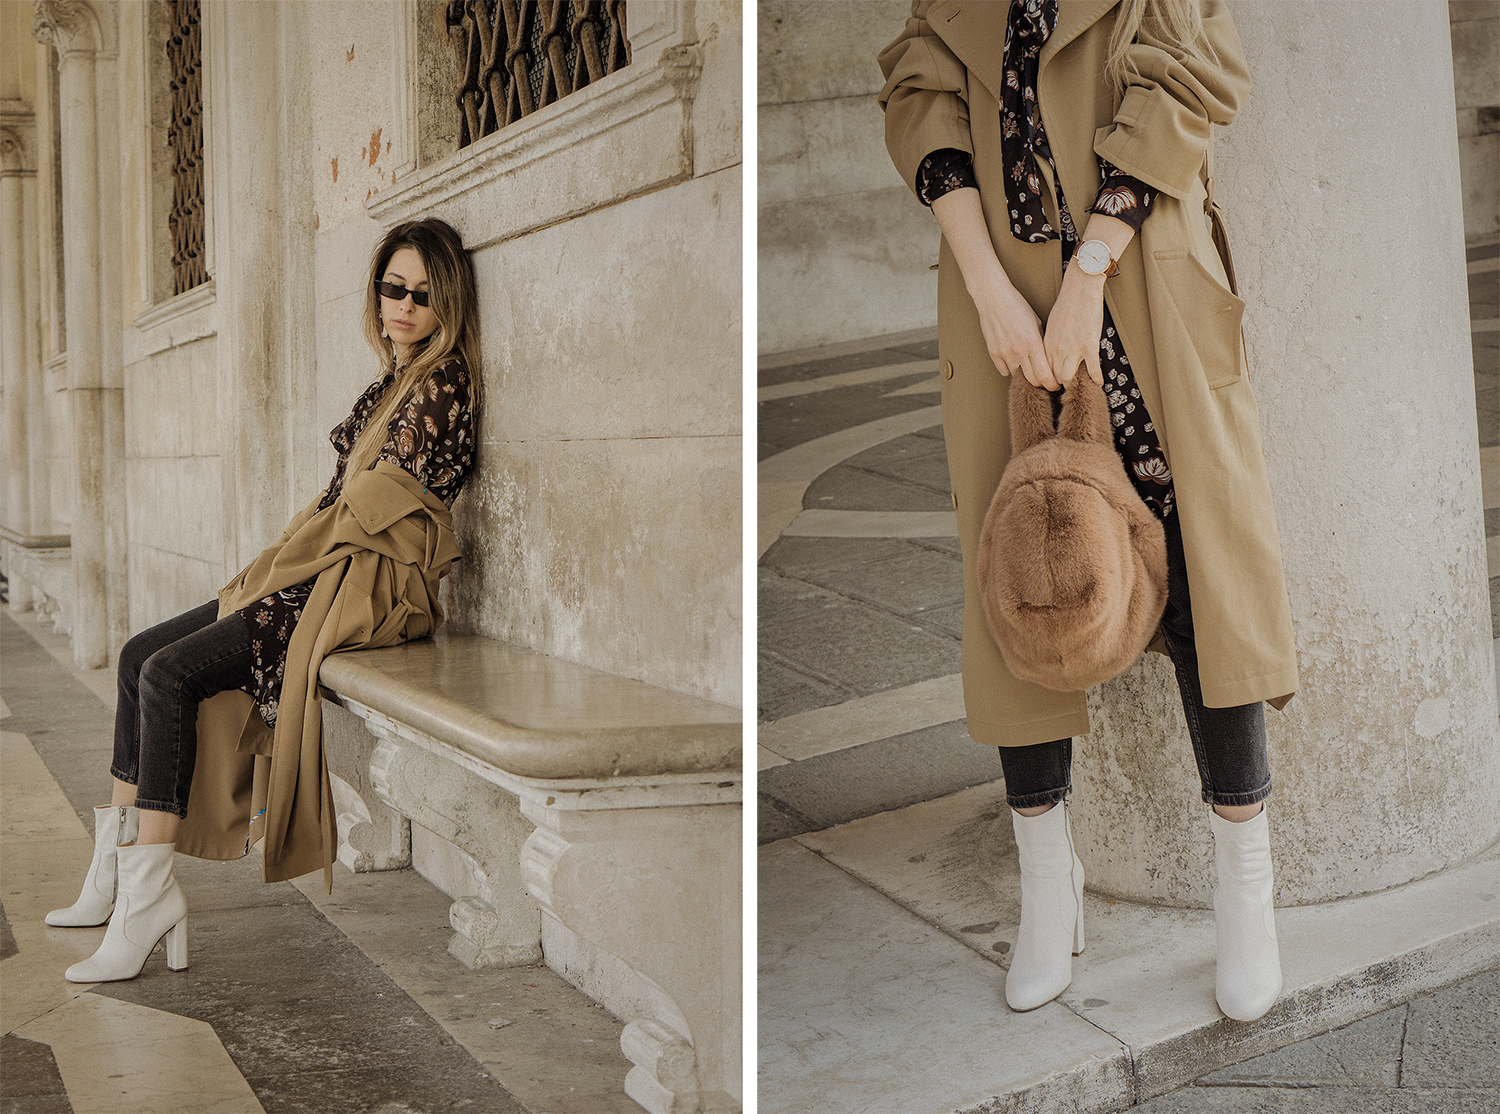 trench_coat_white_boots_dress_with_jeans_venice_italy_fur_bag_fashion_lenajuice_thewhiteocean_09